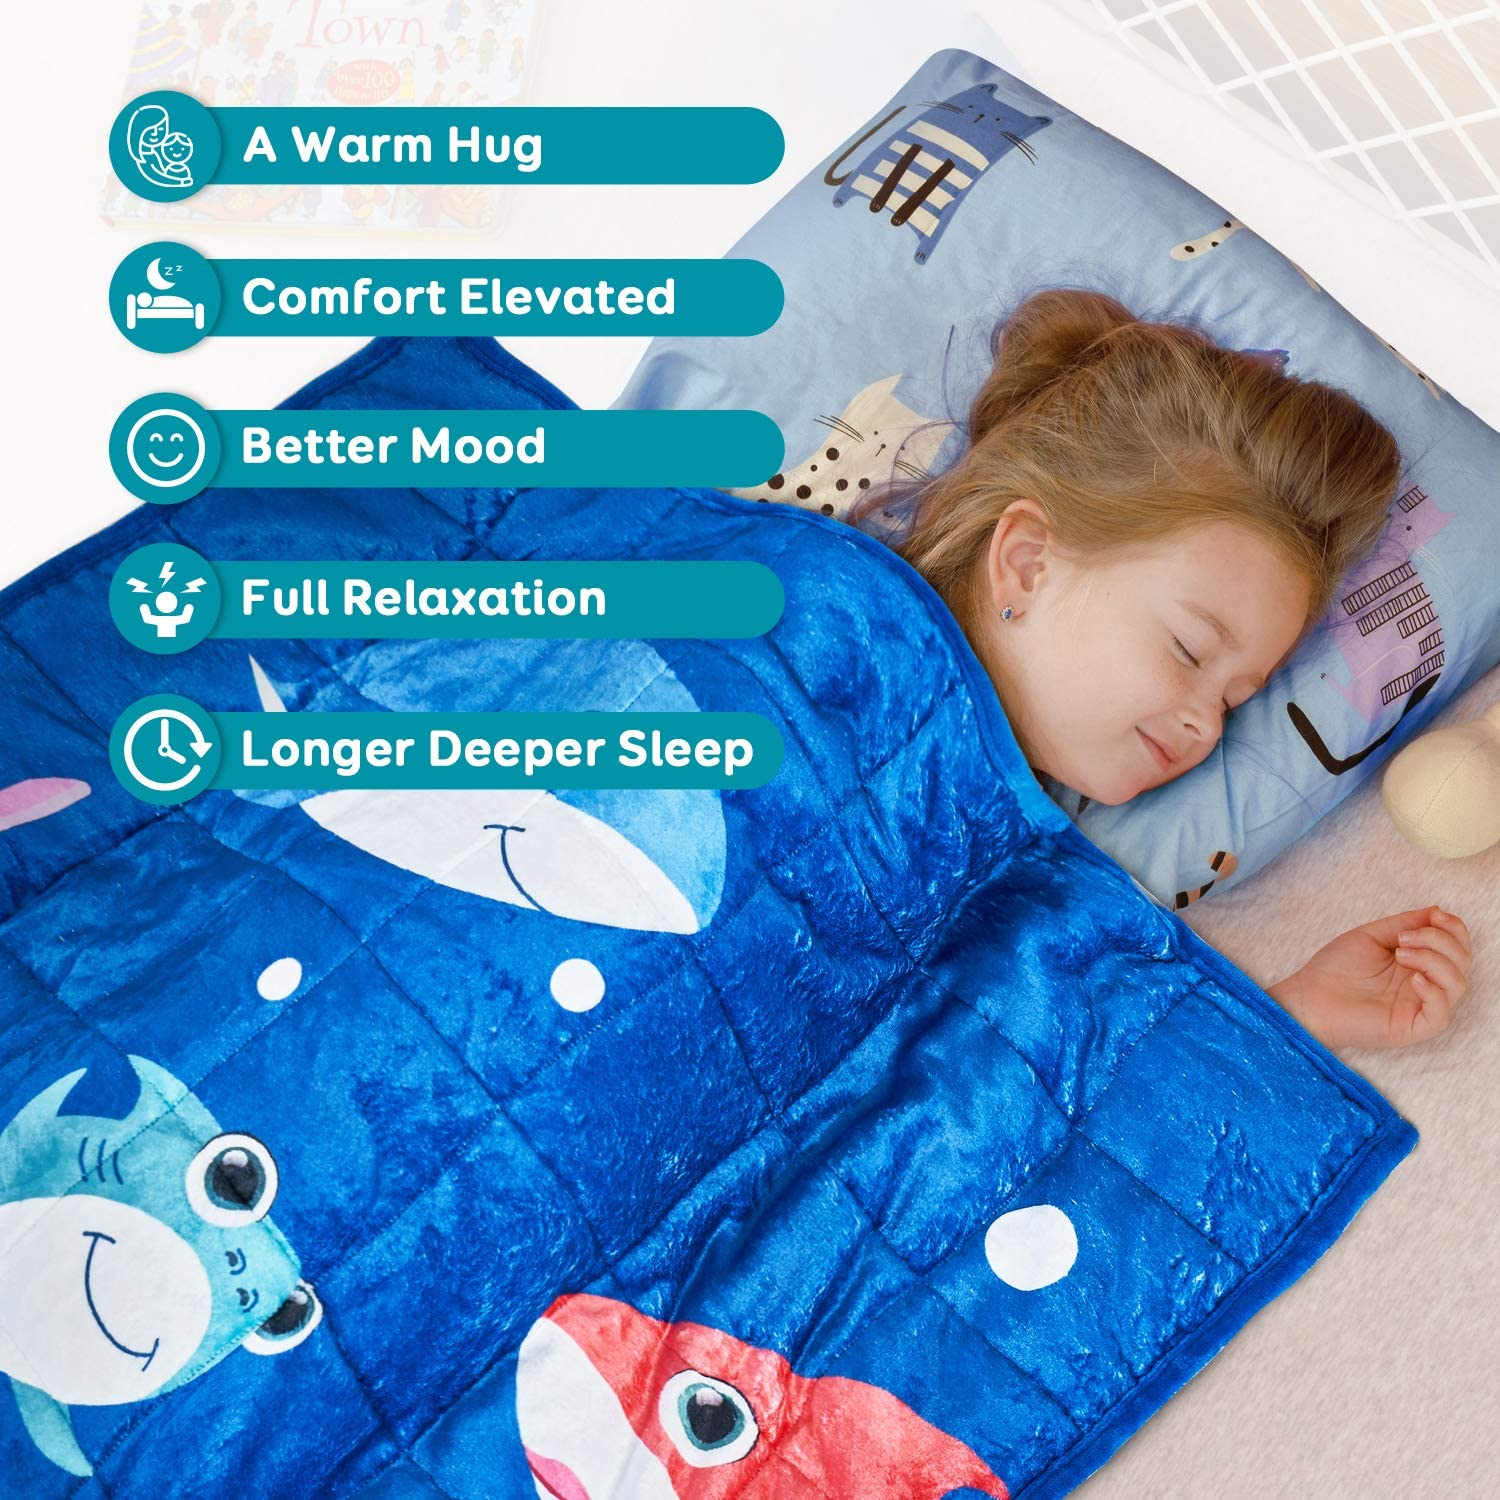 Ultra Comfy Flannel with Cute Cartoon Prints 36x48 Pink Mermaid Topblan Kids Fleece Weighted Blanket 3lbs for Toddlers Plush Fuzzy Warm Coral Velvet Throw Blanket